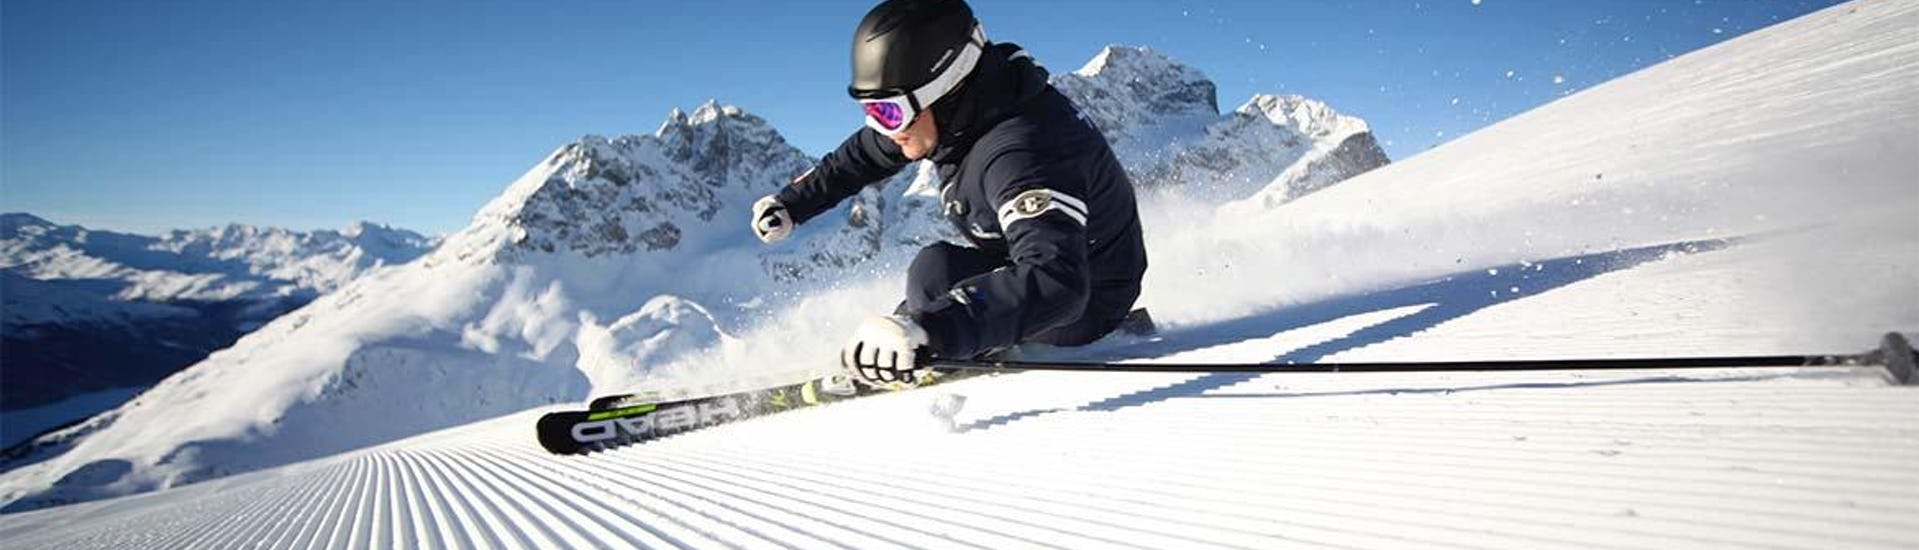 Ski Instructor Private for Adults - Full Day - All Levels